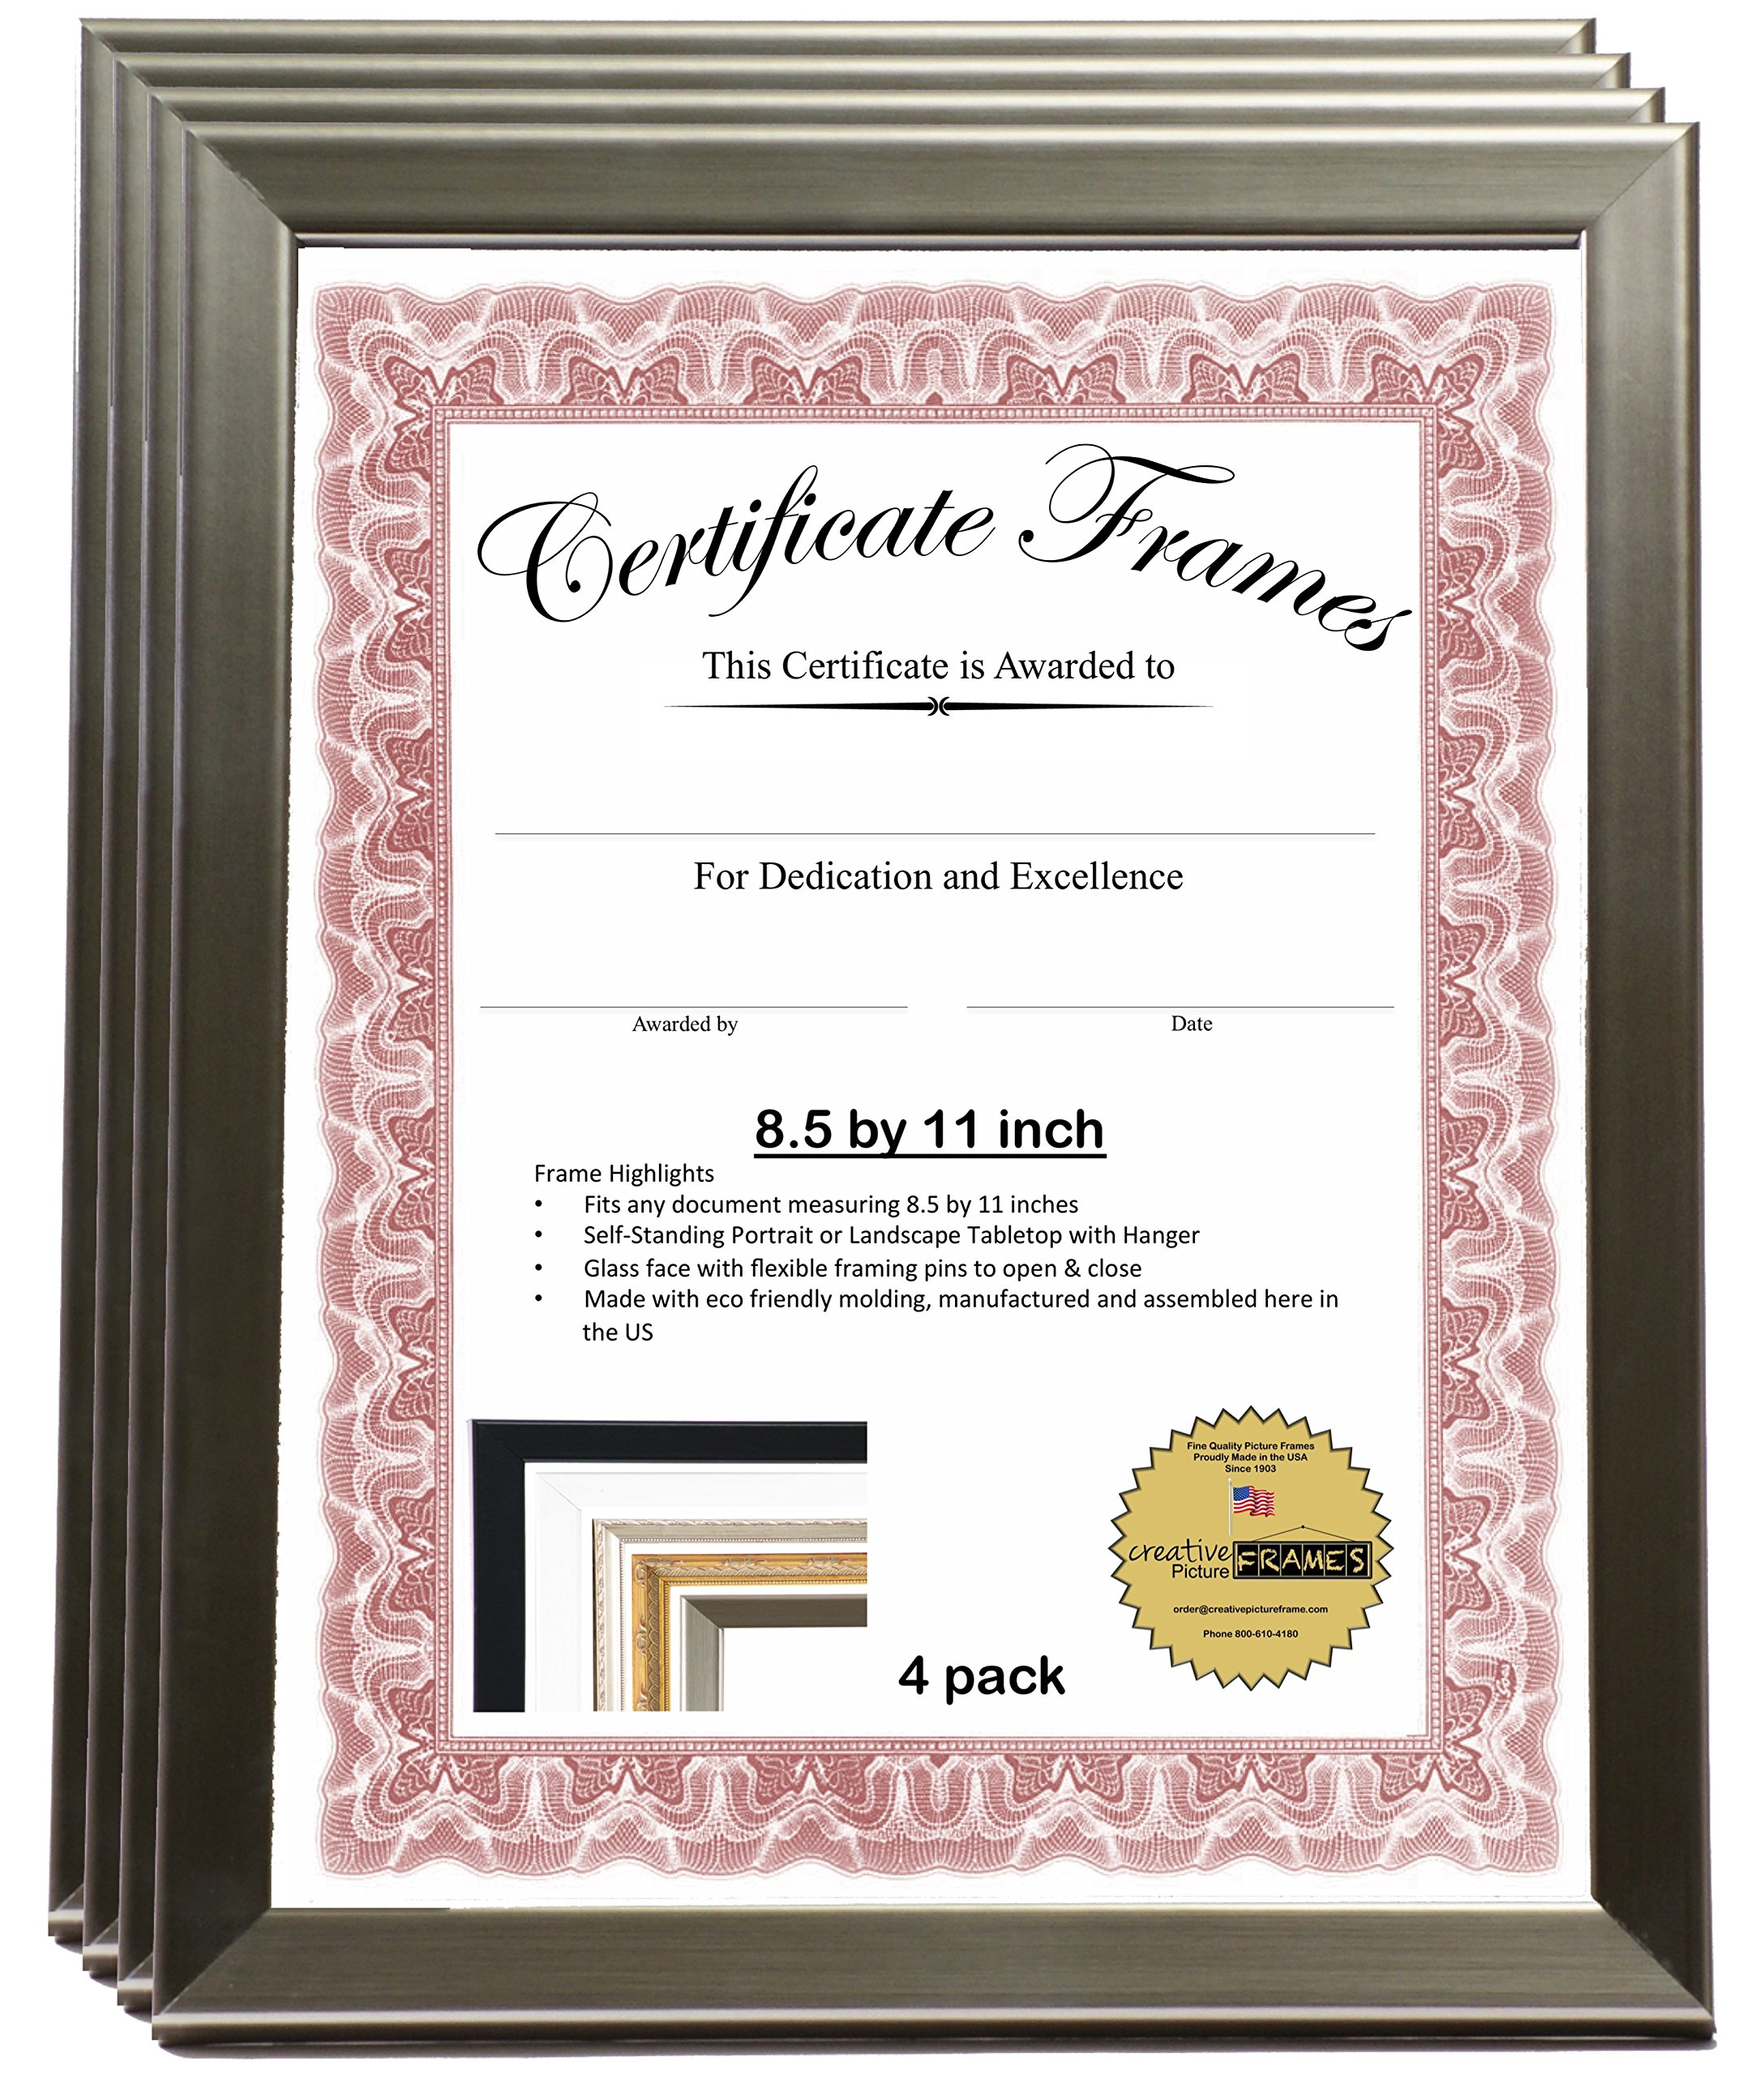 CreativePF- 8.5 by 11 inch Stainless Steel Certificate Frames Collection for Professionals- Displays Certificates, Achievements , Awards and more -Self Standing with Hanger (4-Pack)